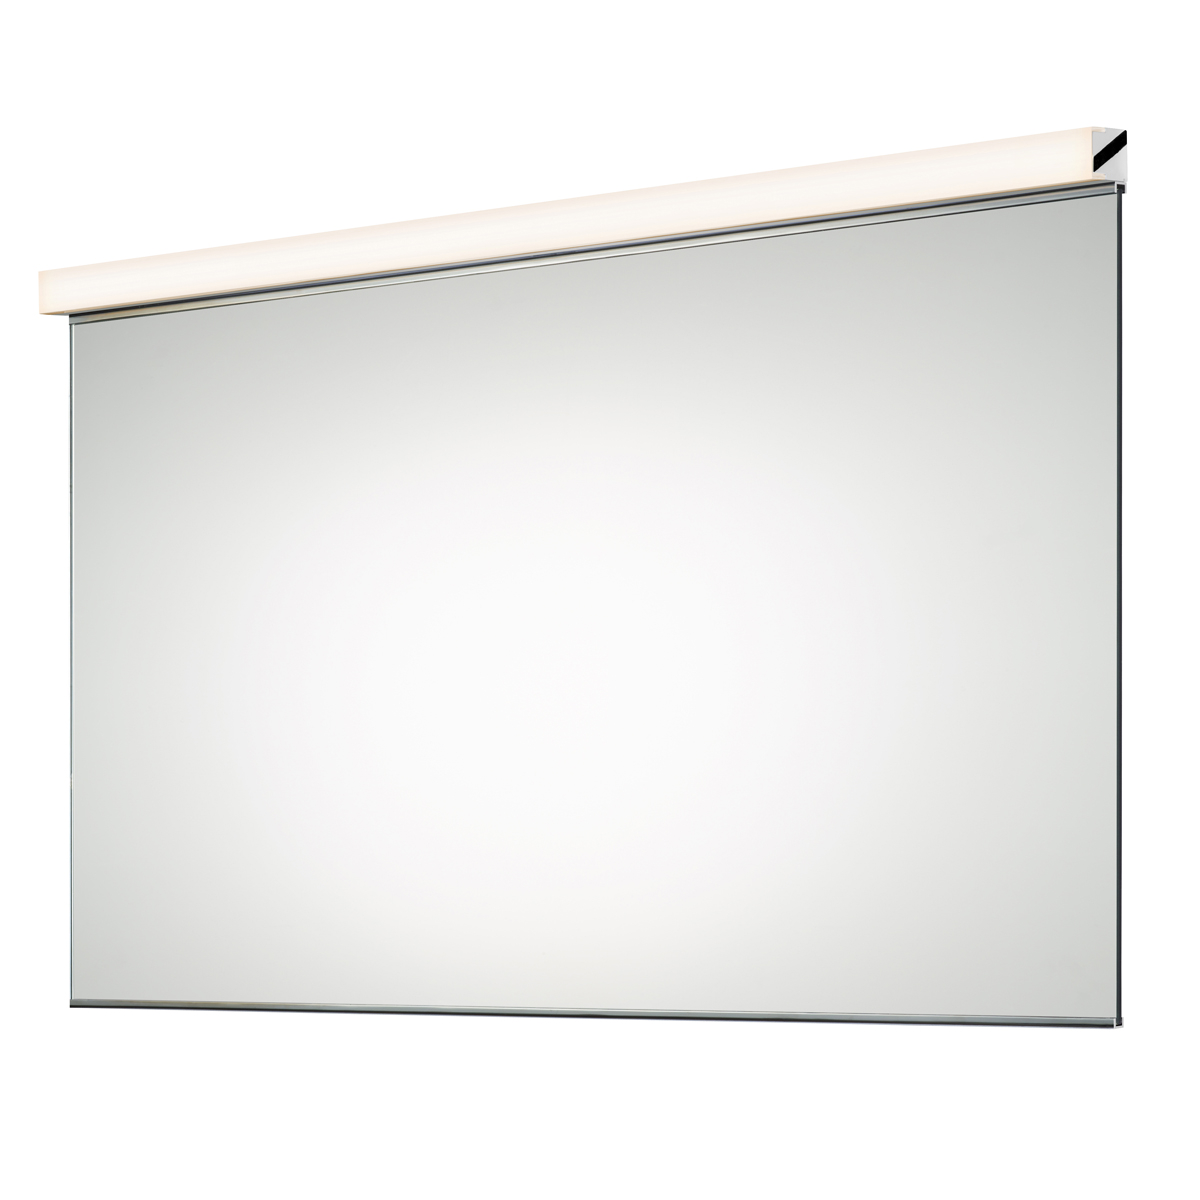 Vanity Led Kit : Vanity : LED Mirror Kit Yale Appliance and Lighting